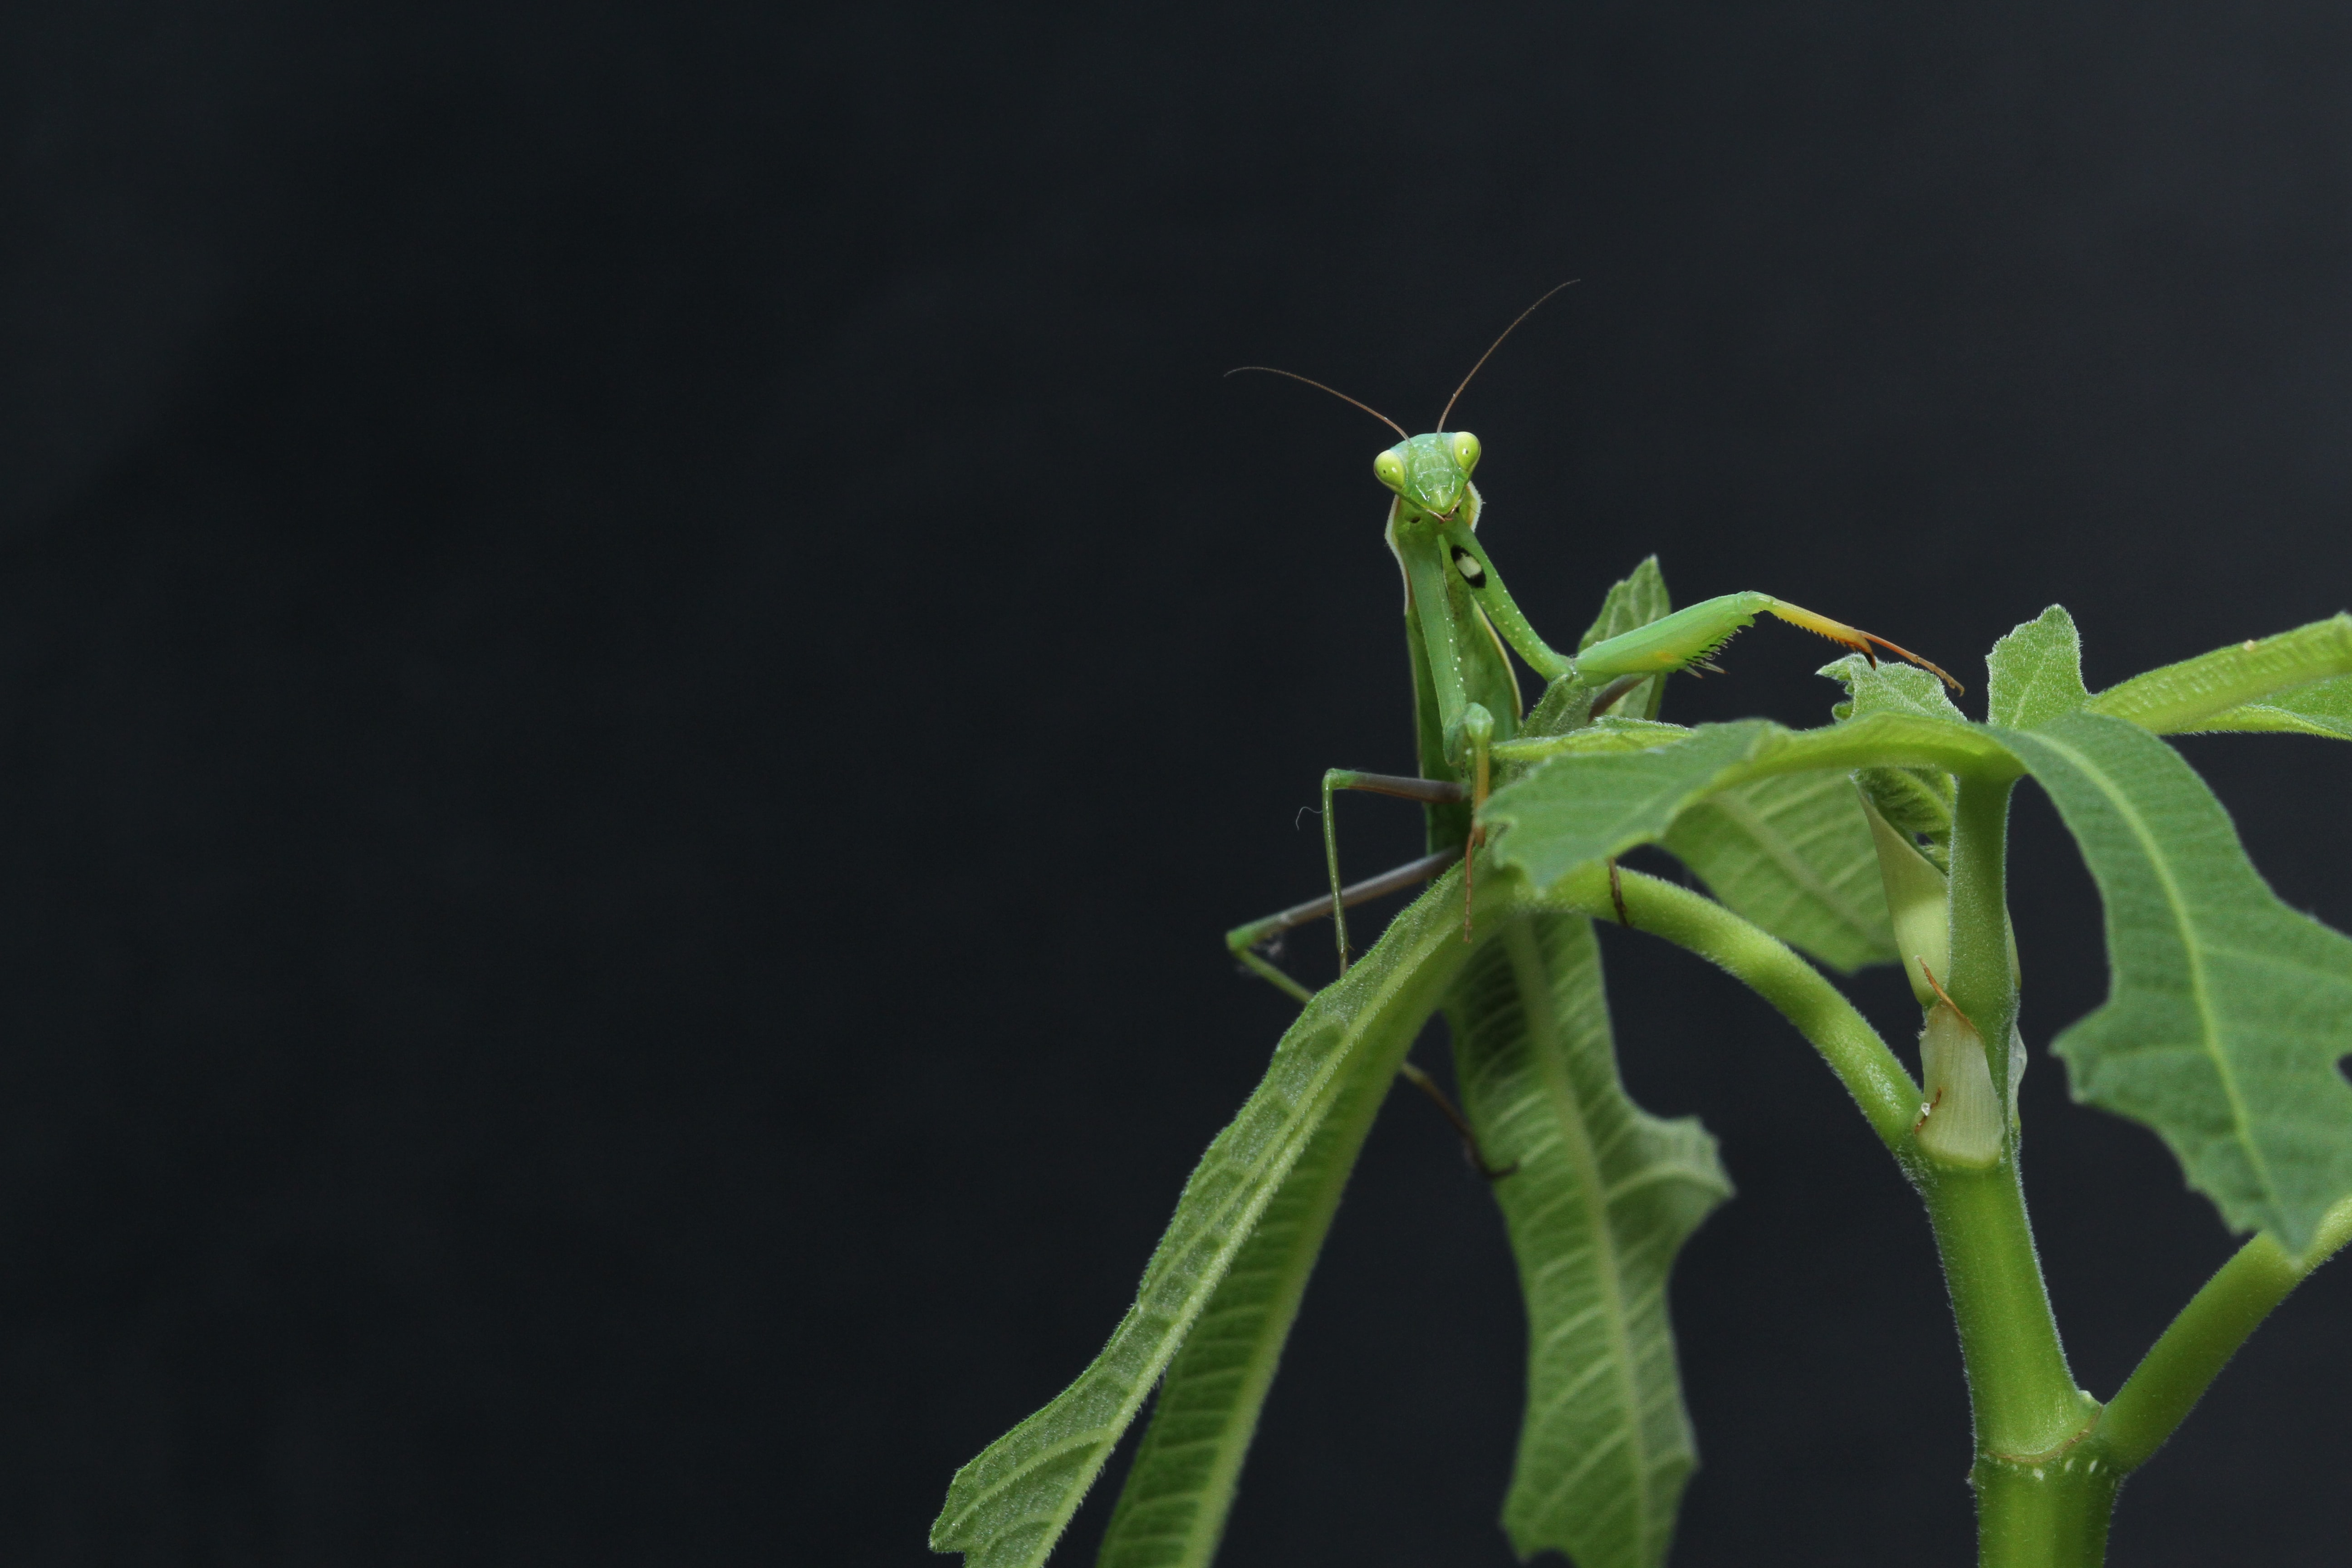 A green praying mantis sitting on the top of a green stem